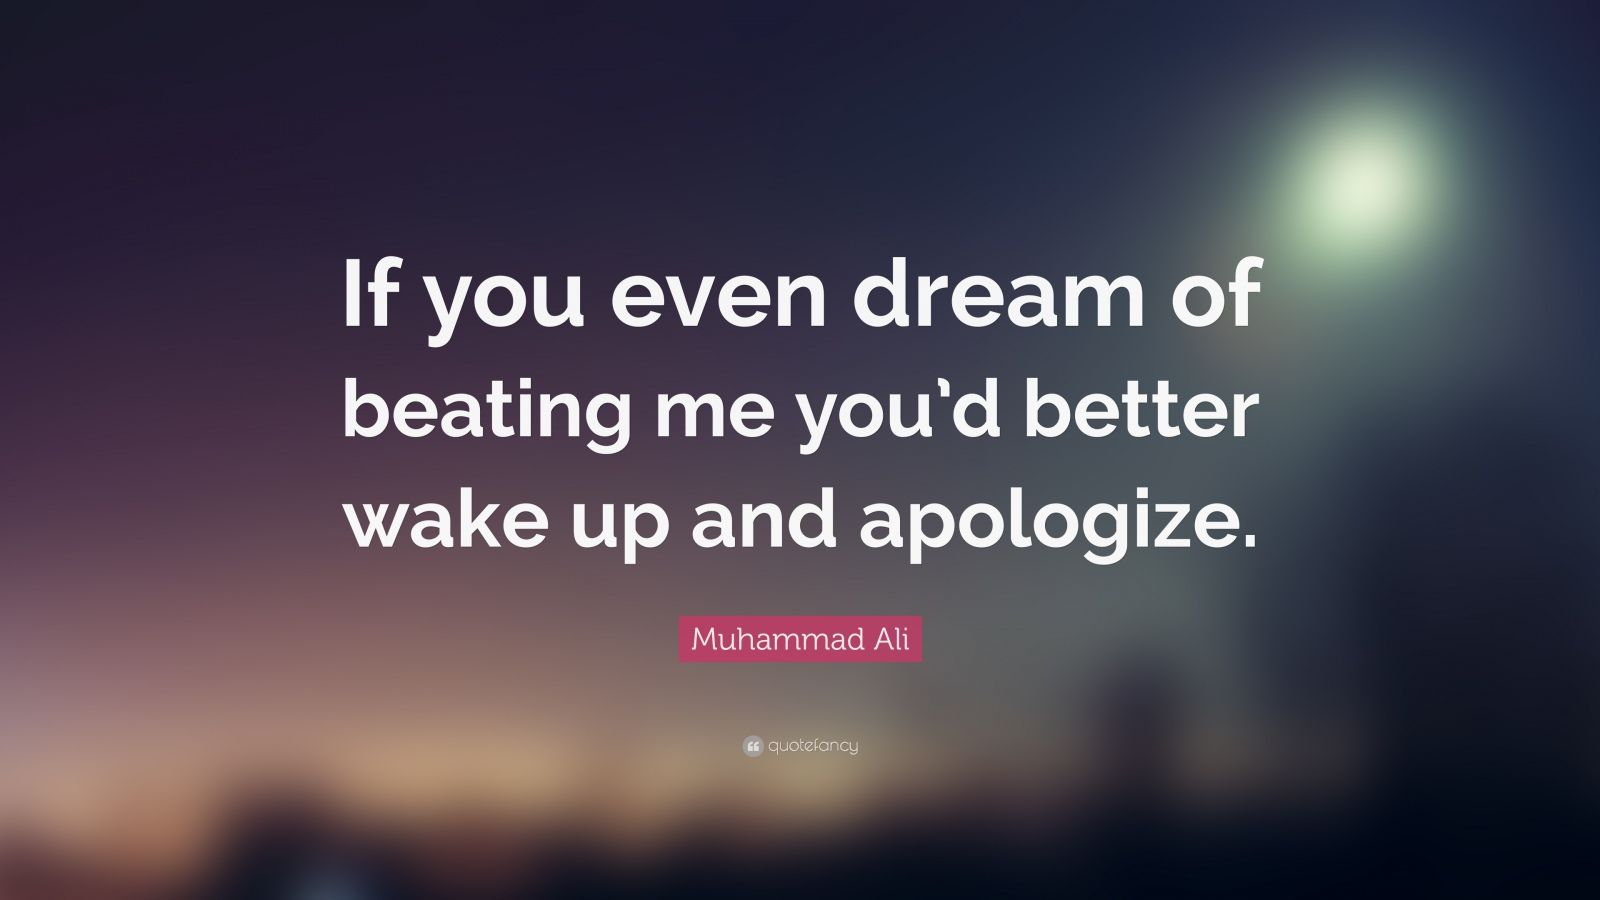 Wallpaper Hello Fall Muhammad Ali Quote If You Even Dream Of Beating Me You D